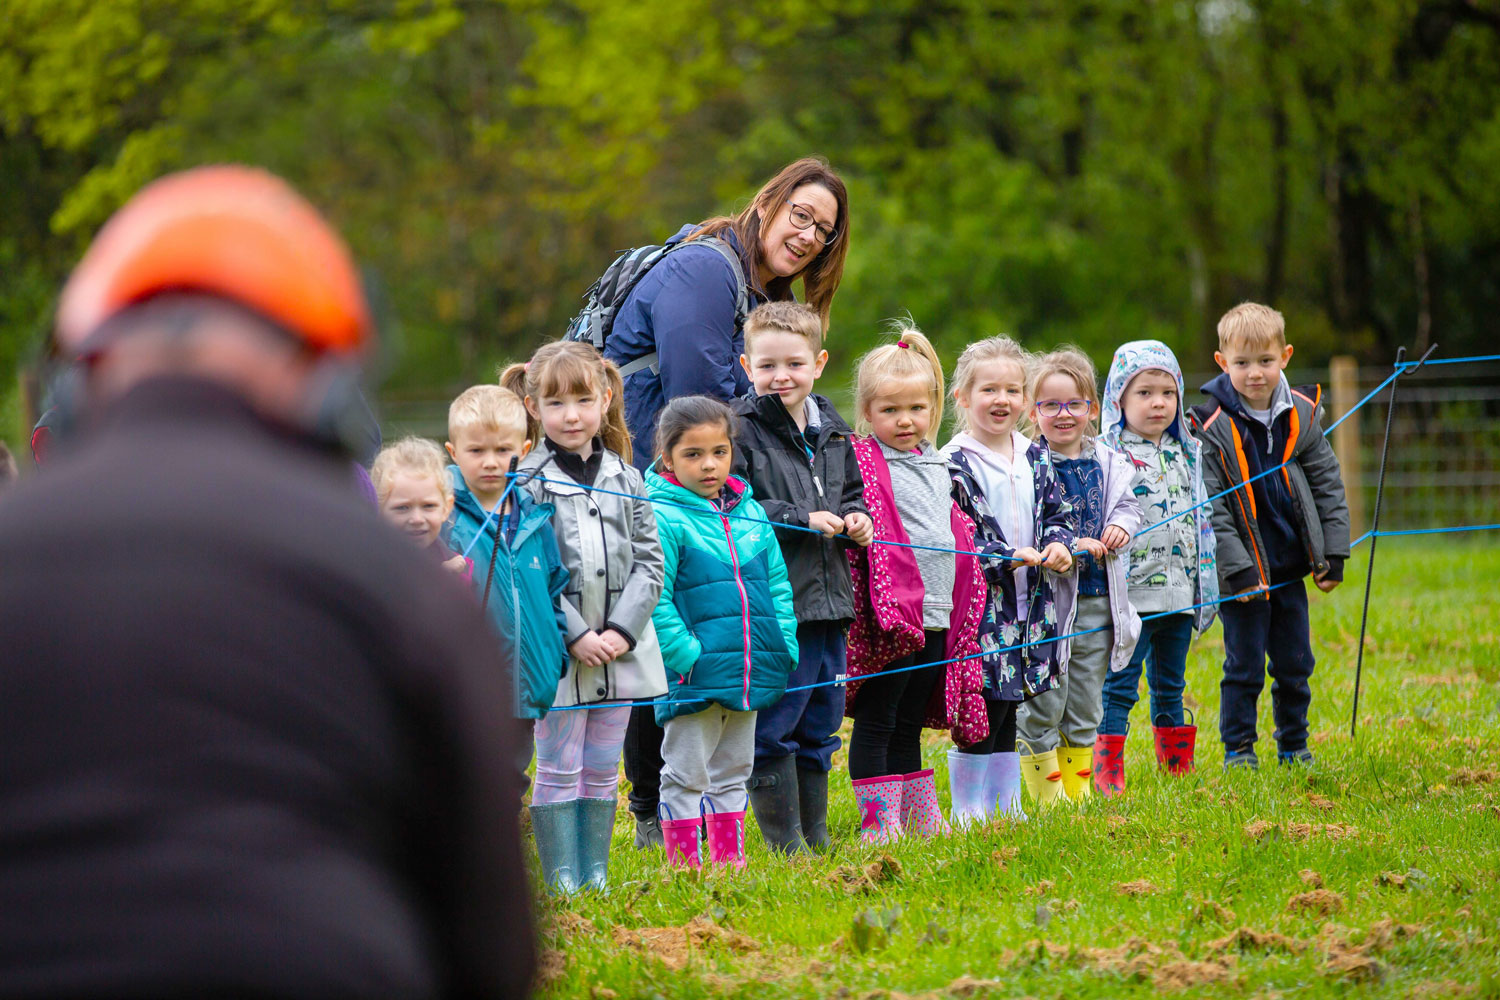 School children watch on during a chain saw demonstration at Great Grounds Education Centre.